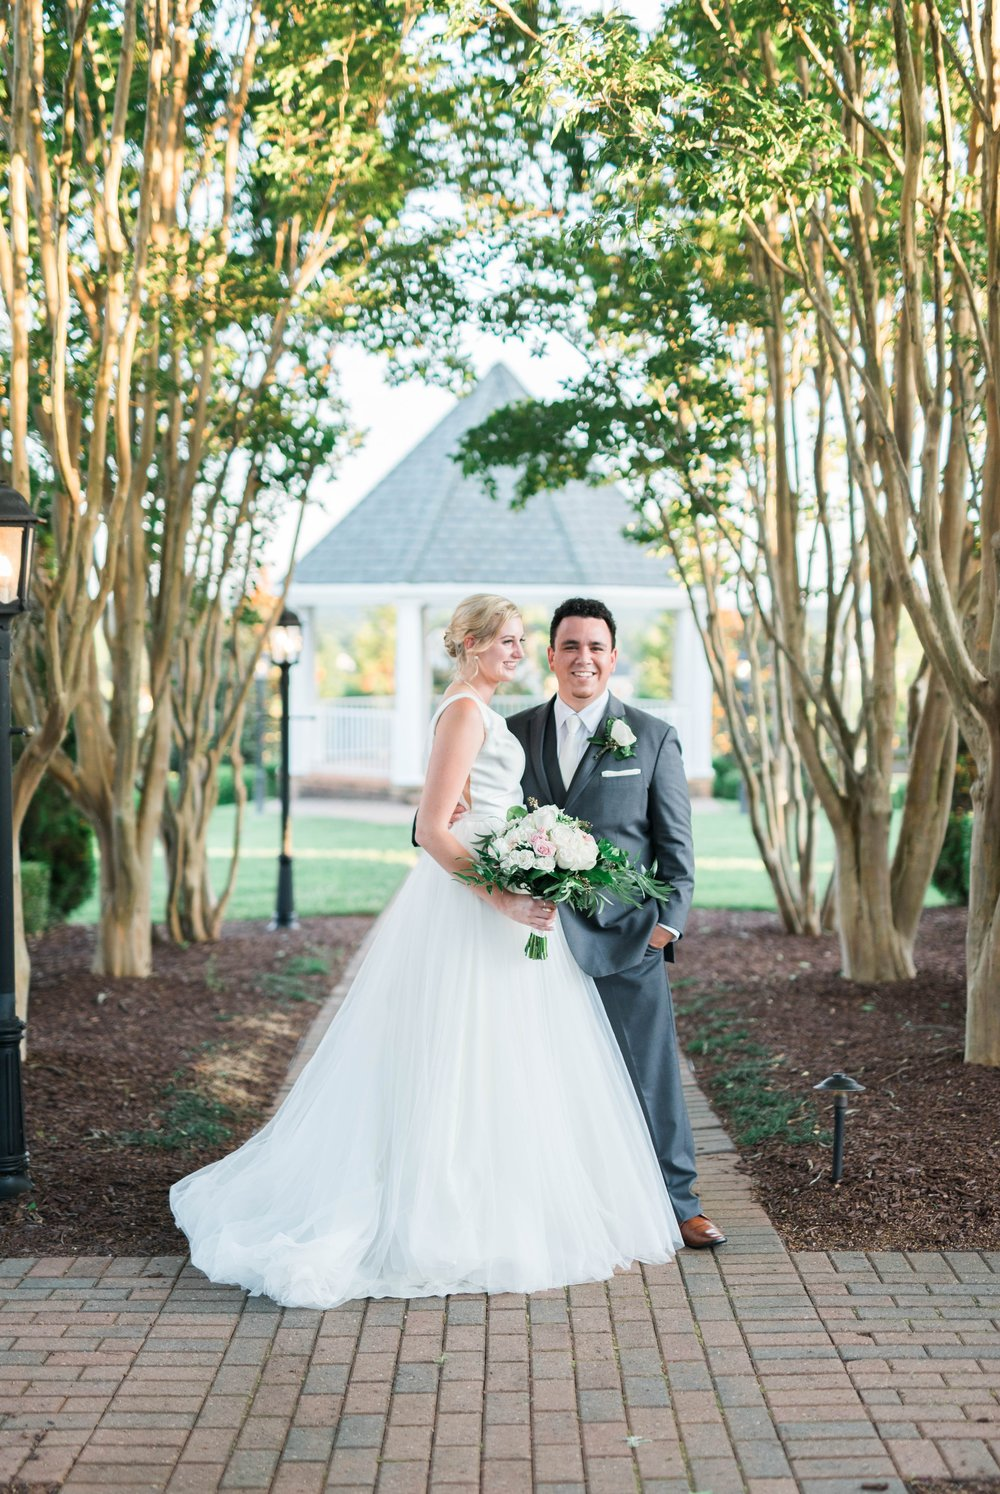 westmanorestate_entwinedevents_lynchburgweddingphotographer_Virginiaweddingphotographer_kateyam 3.jpg